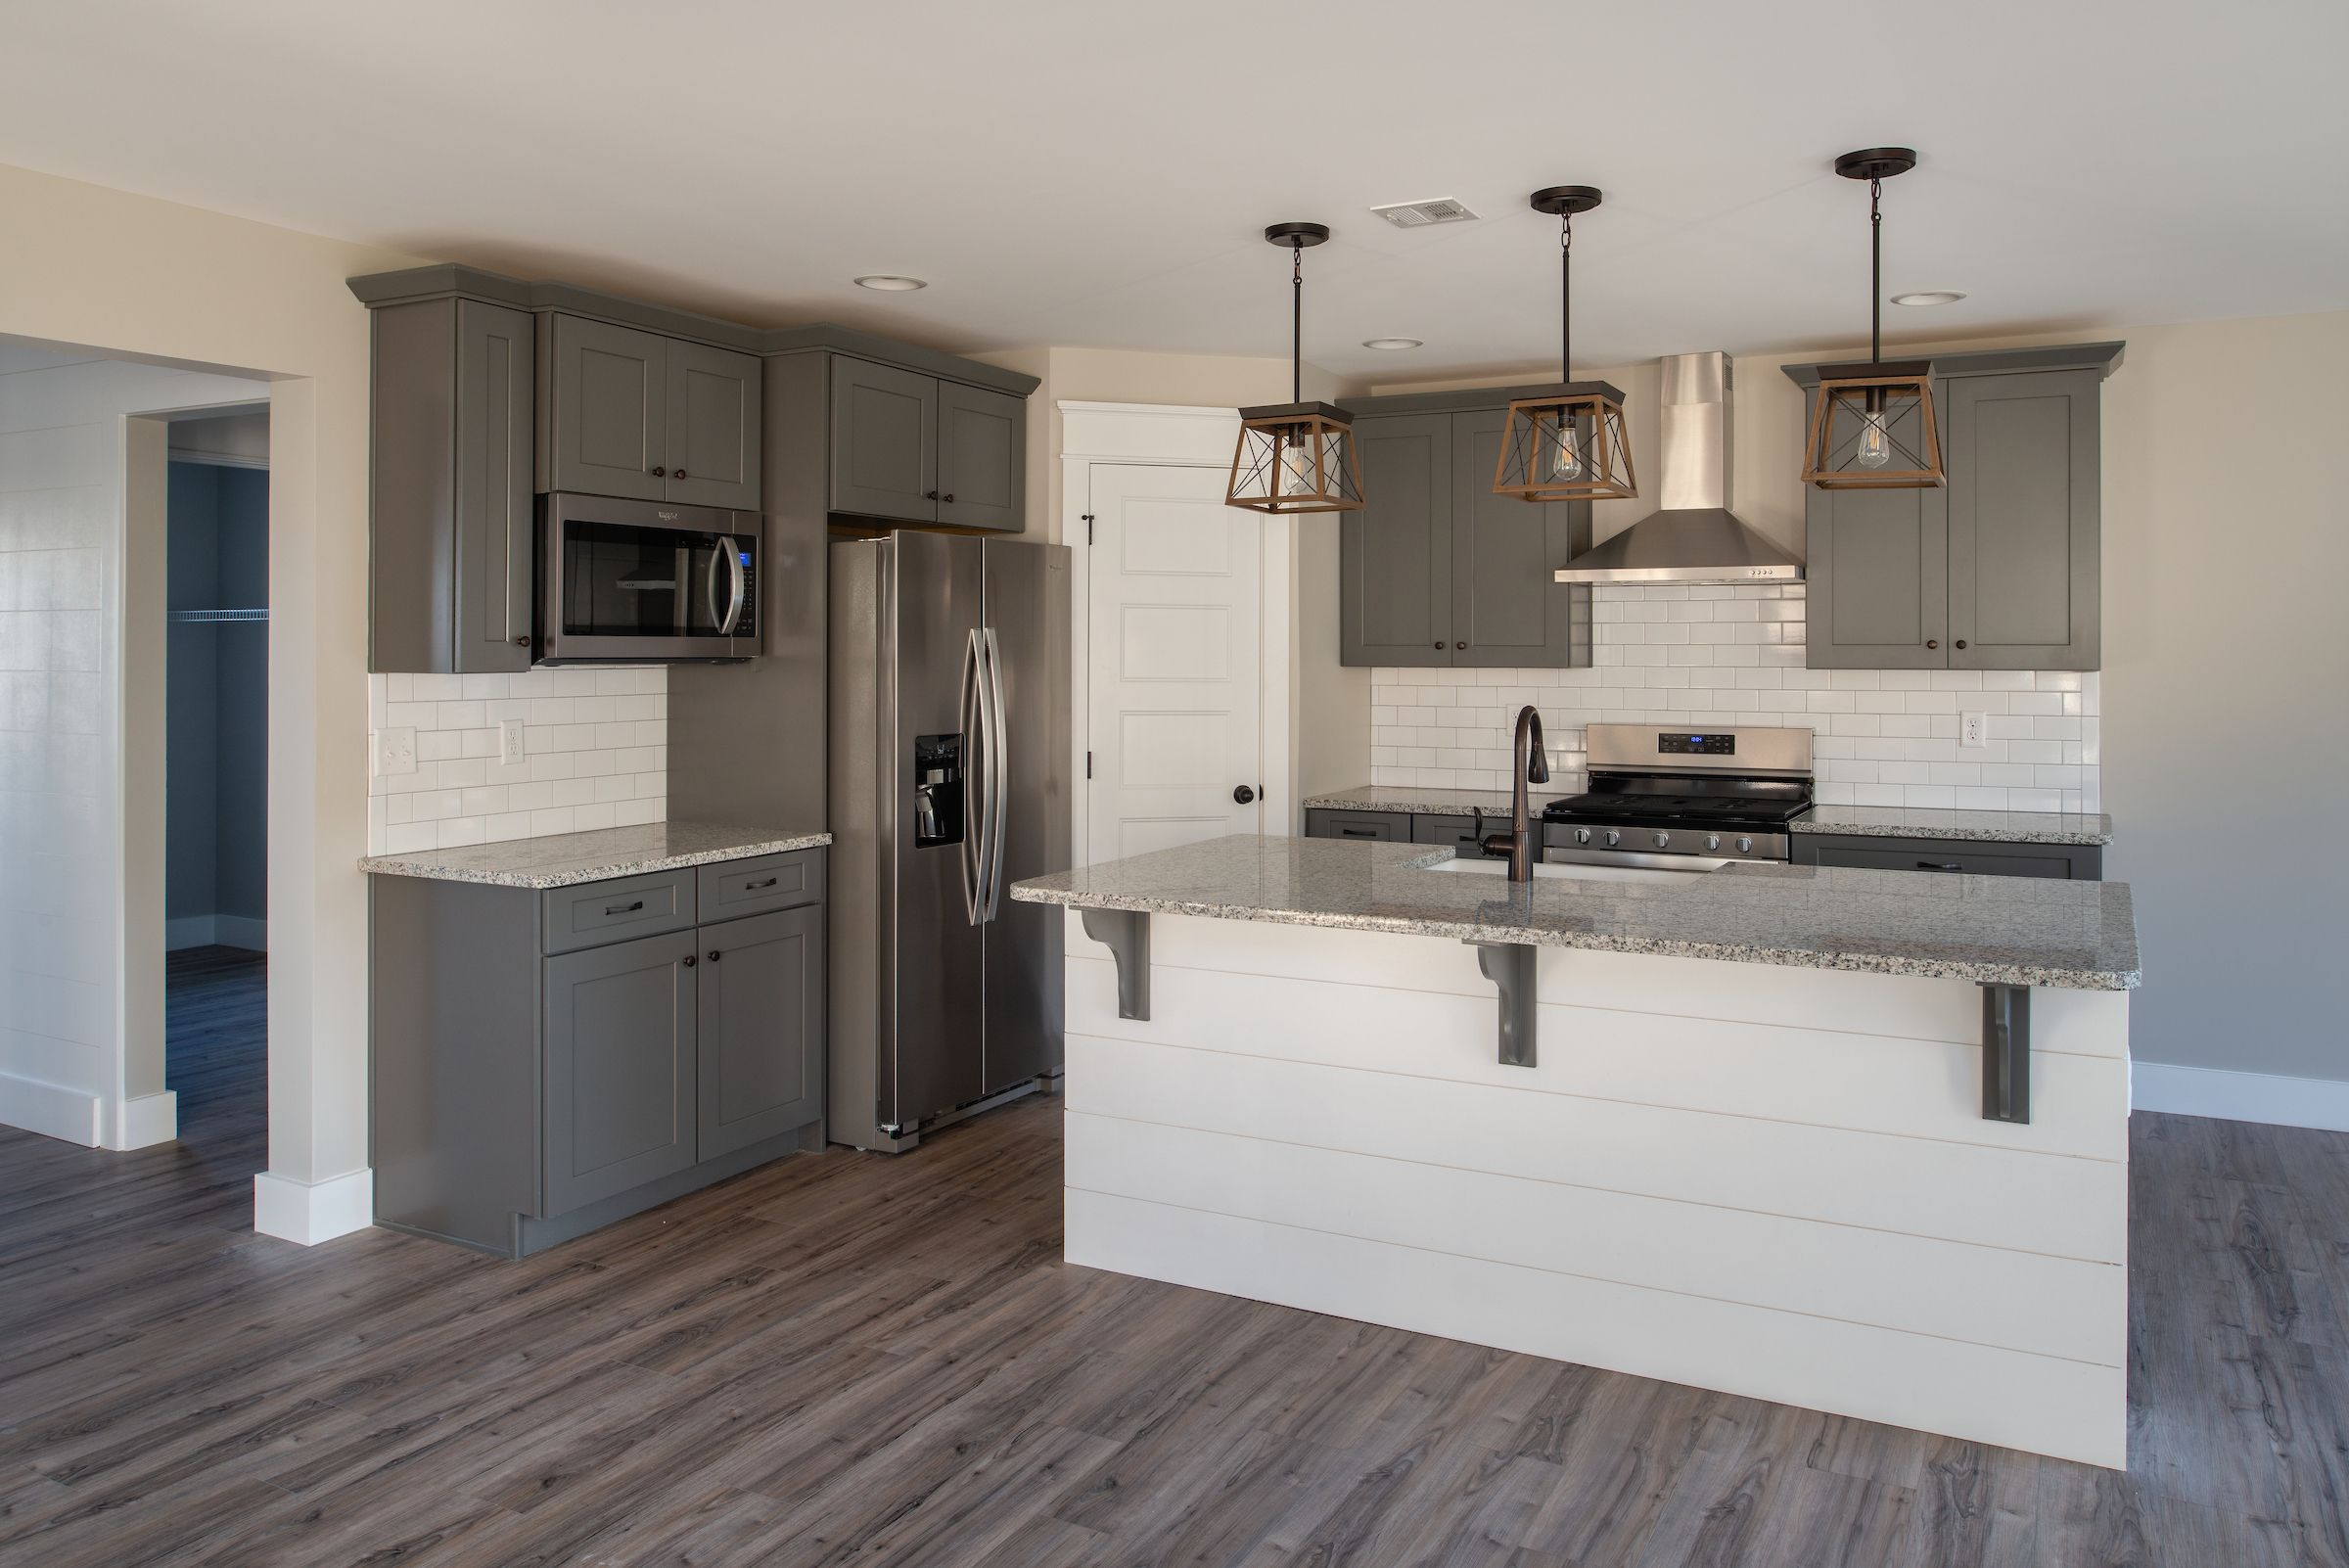 Kitchen featured in the Sycamore Heritage By Keystone Custom Homes in York, PA